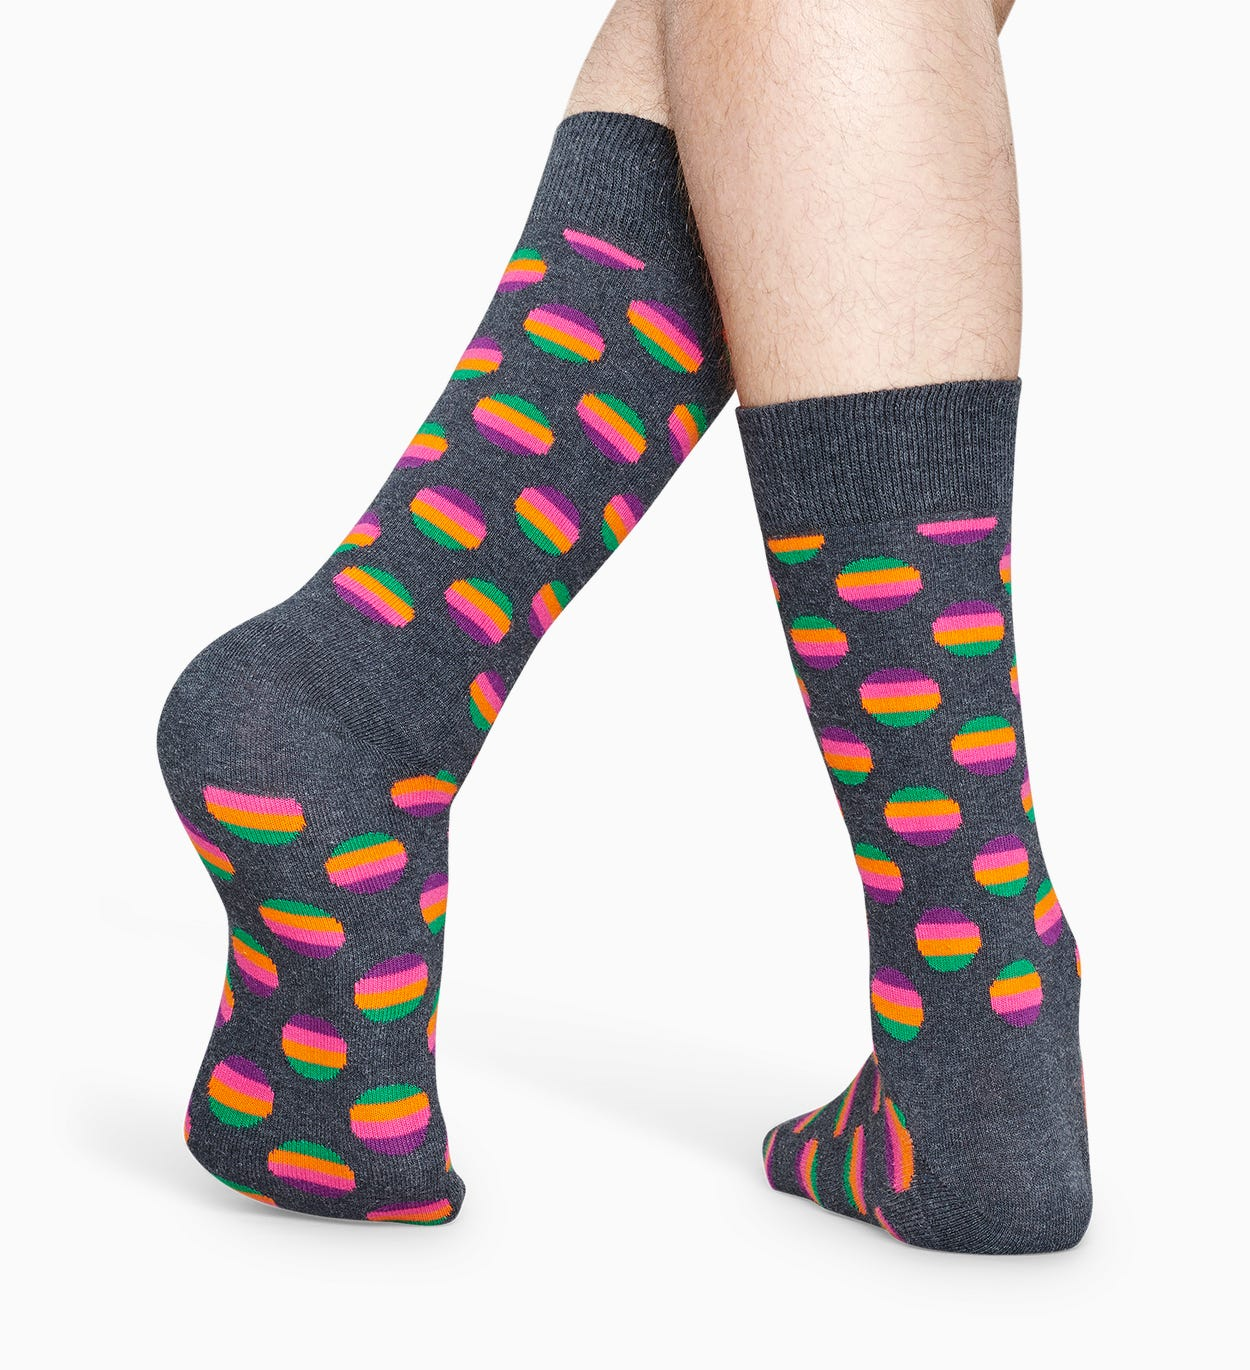 Gemusterte dunkelgraue Socken: Sunrise Dot | Happy Socks